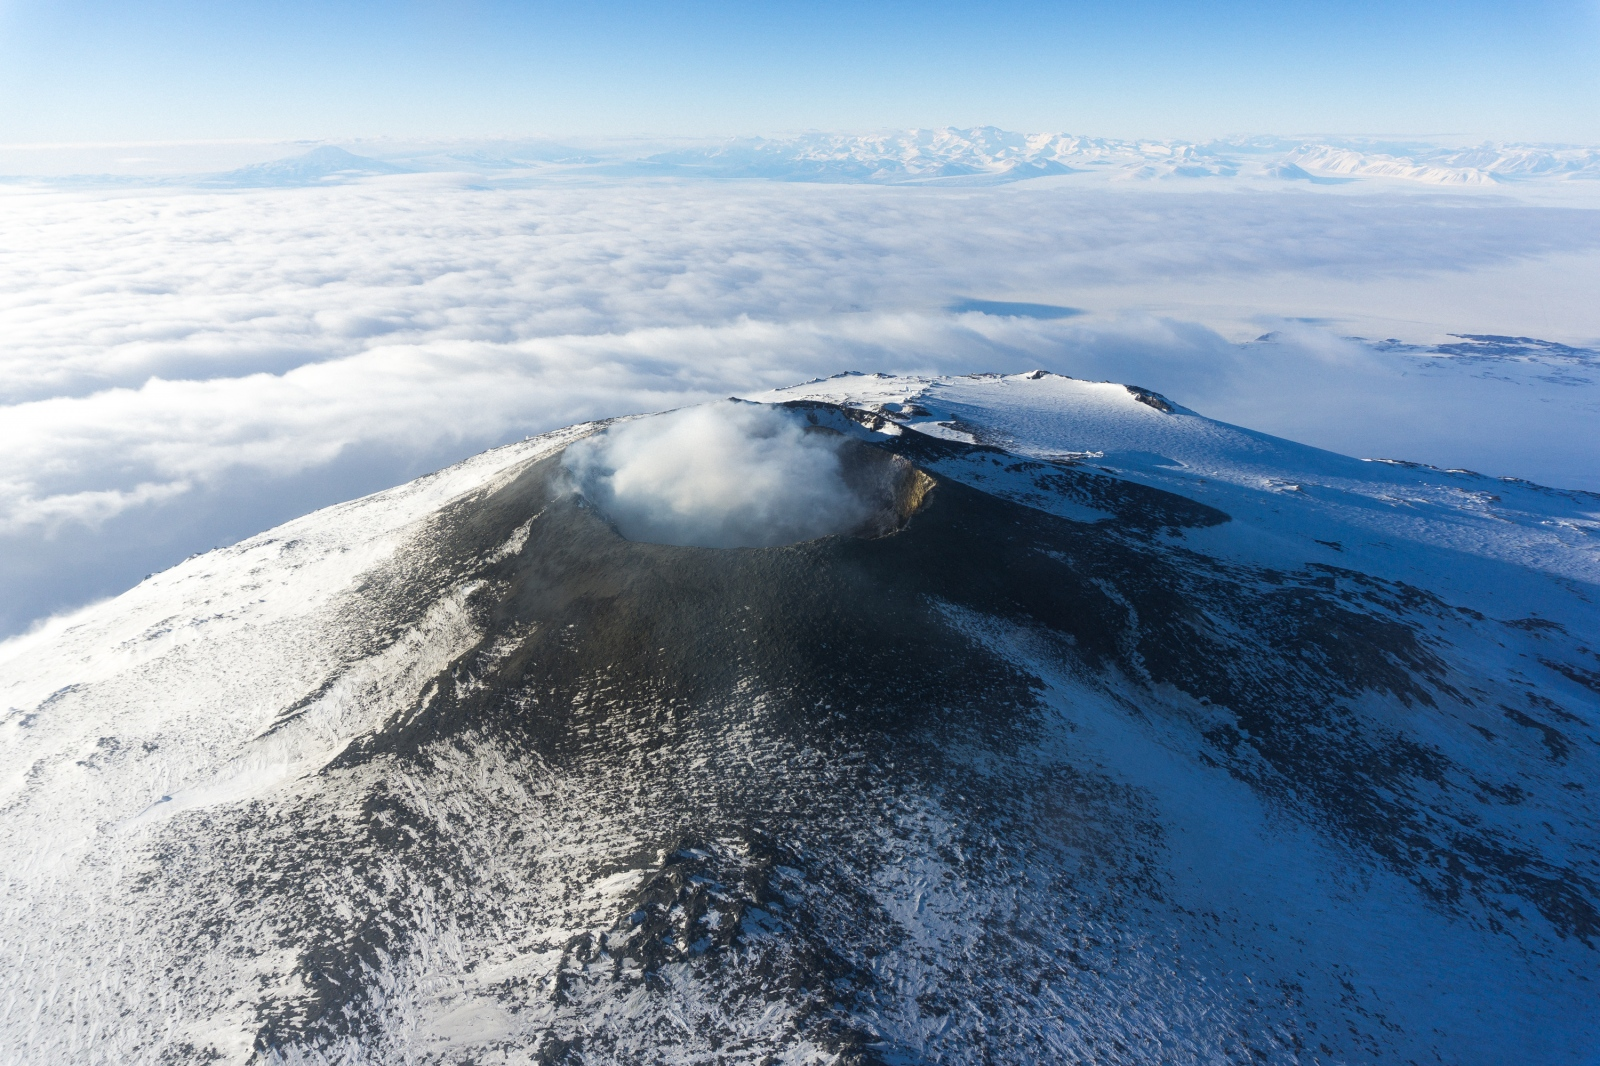 Mt. Erebus (3.700 meters) crater viewed from helicopter. As the southernmost active volcano, Erebus continually emits steam from its molten lava lake a few hundred meters beneath the crater rim. In the background are the transantarctic mountains which span thousands of kilometers and are one of the longest mountain chains in the world.